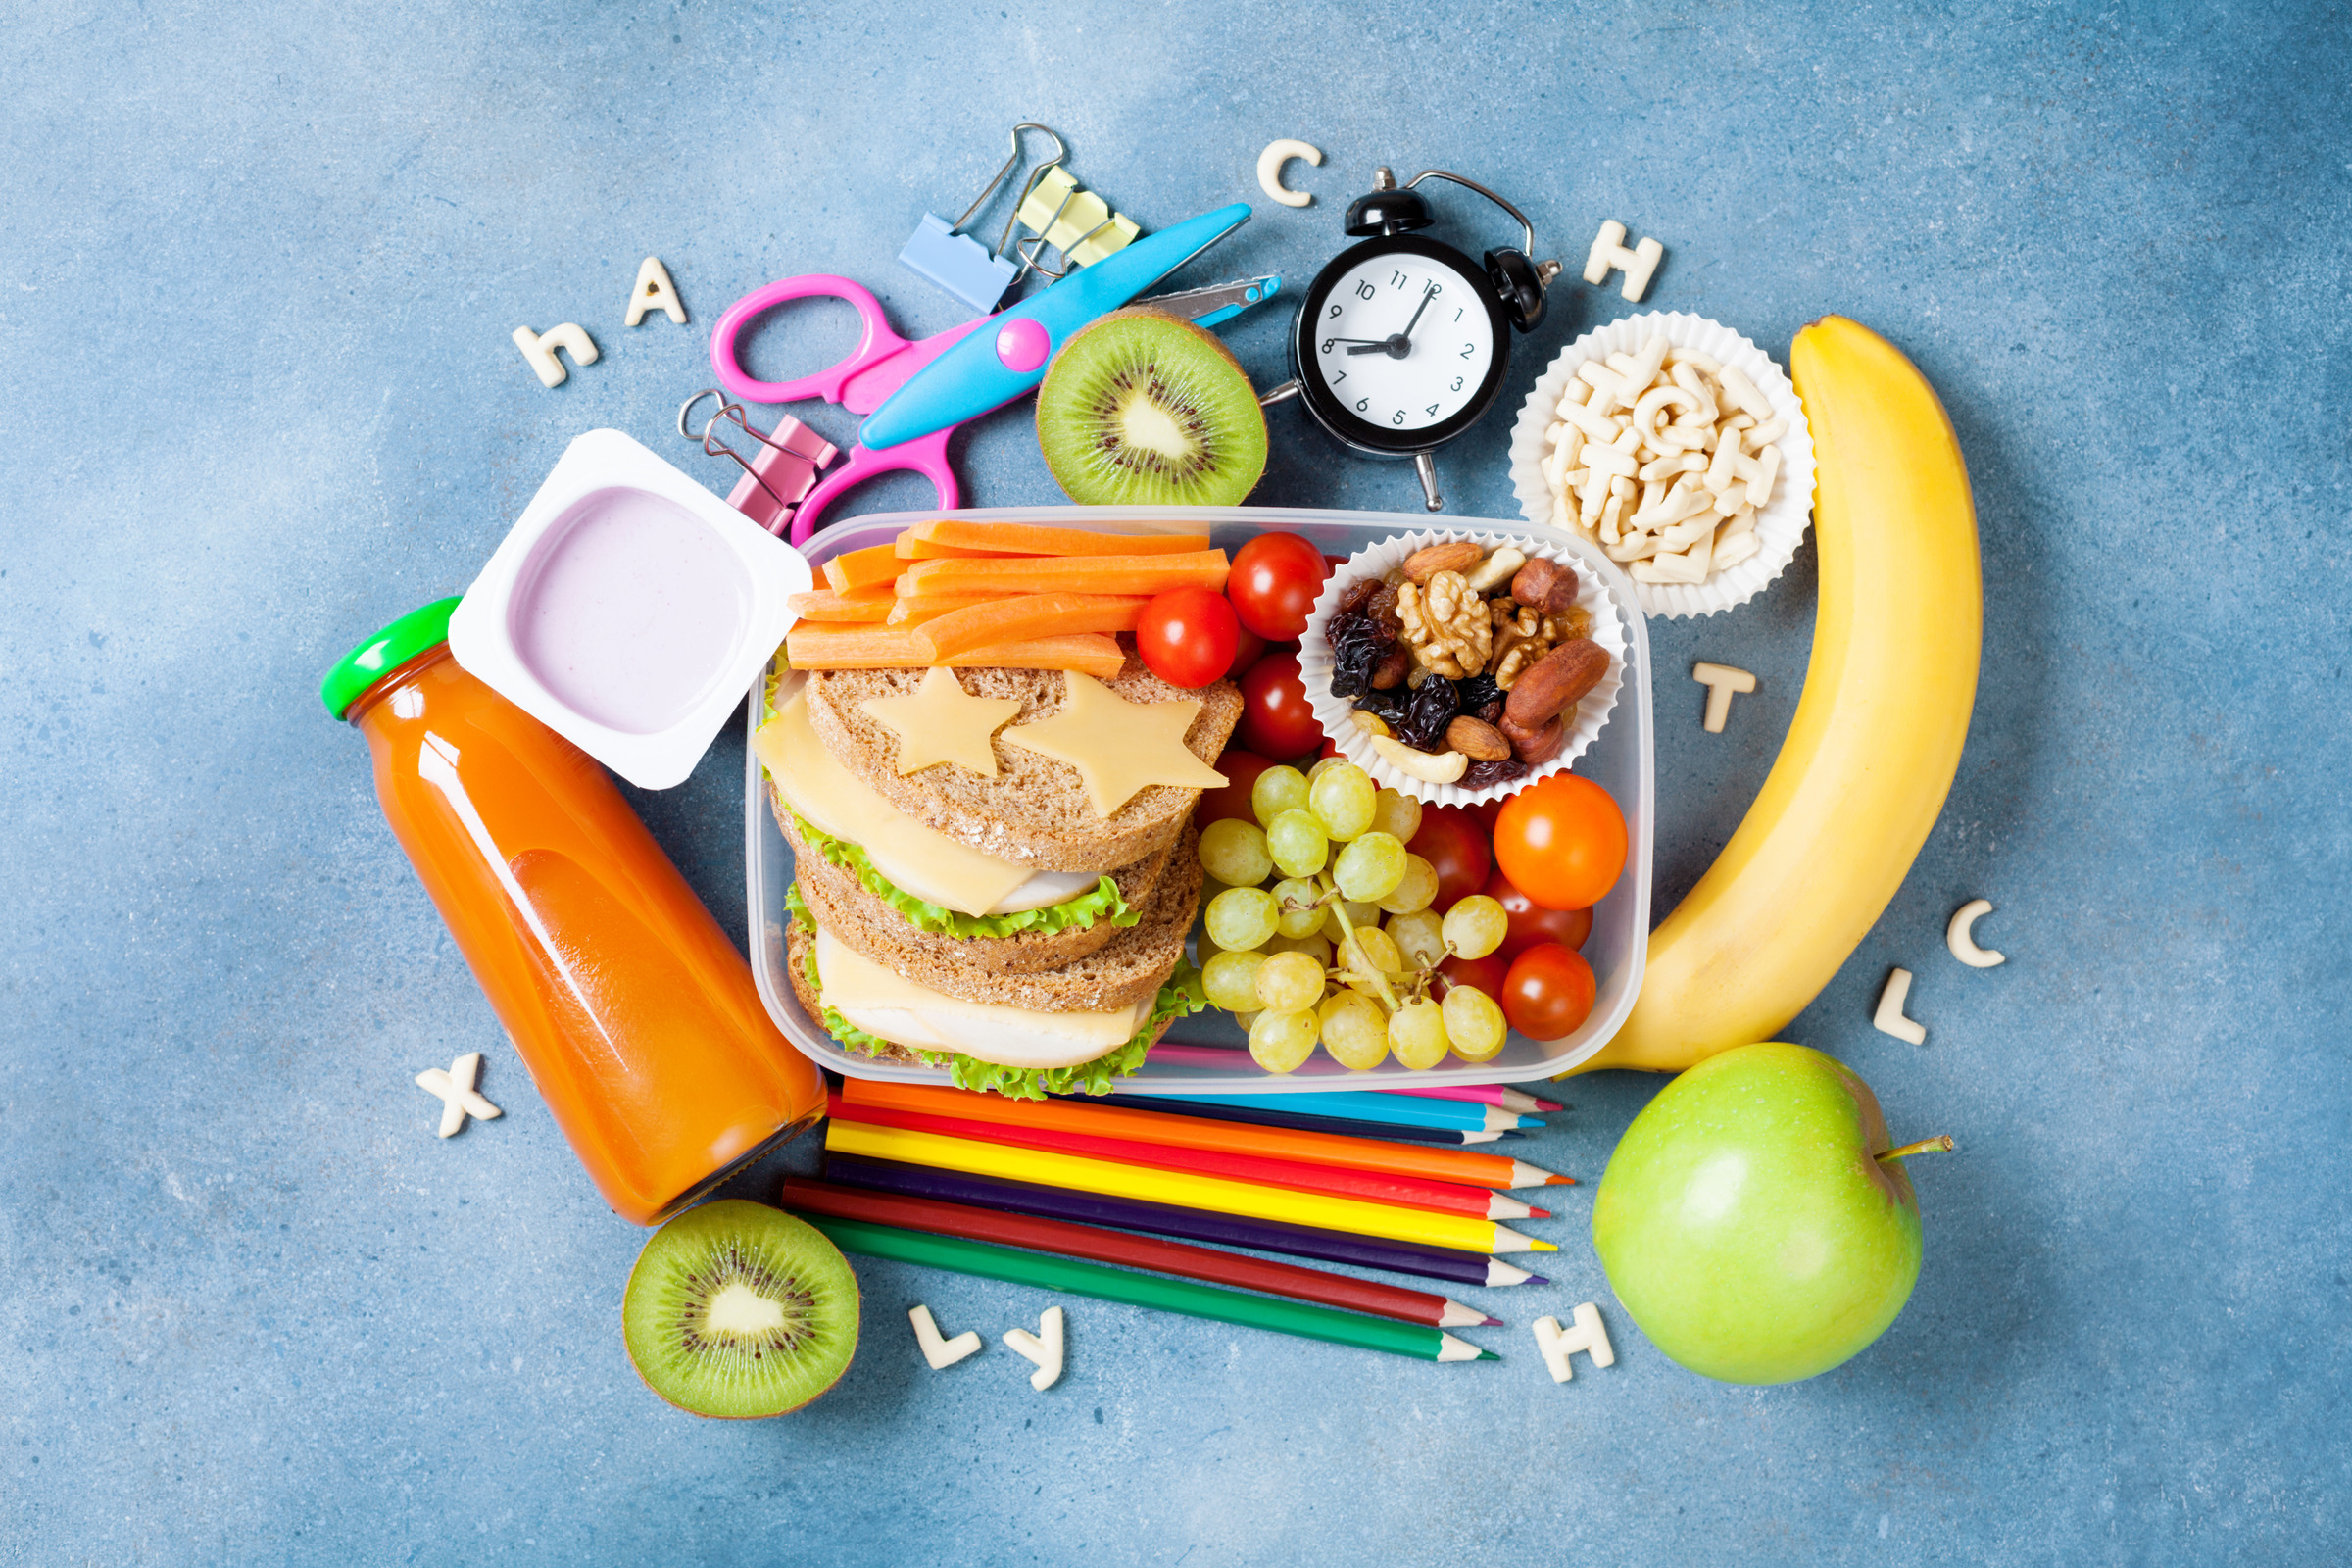 Back to school concept. Nutritional lunch box and colorful stationery top view.